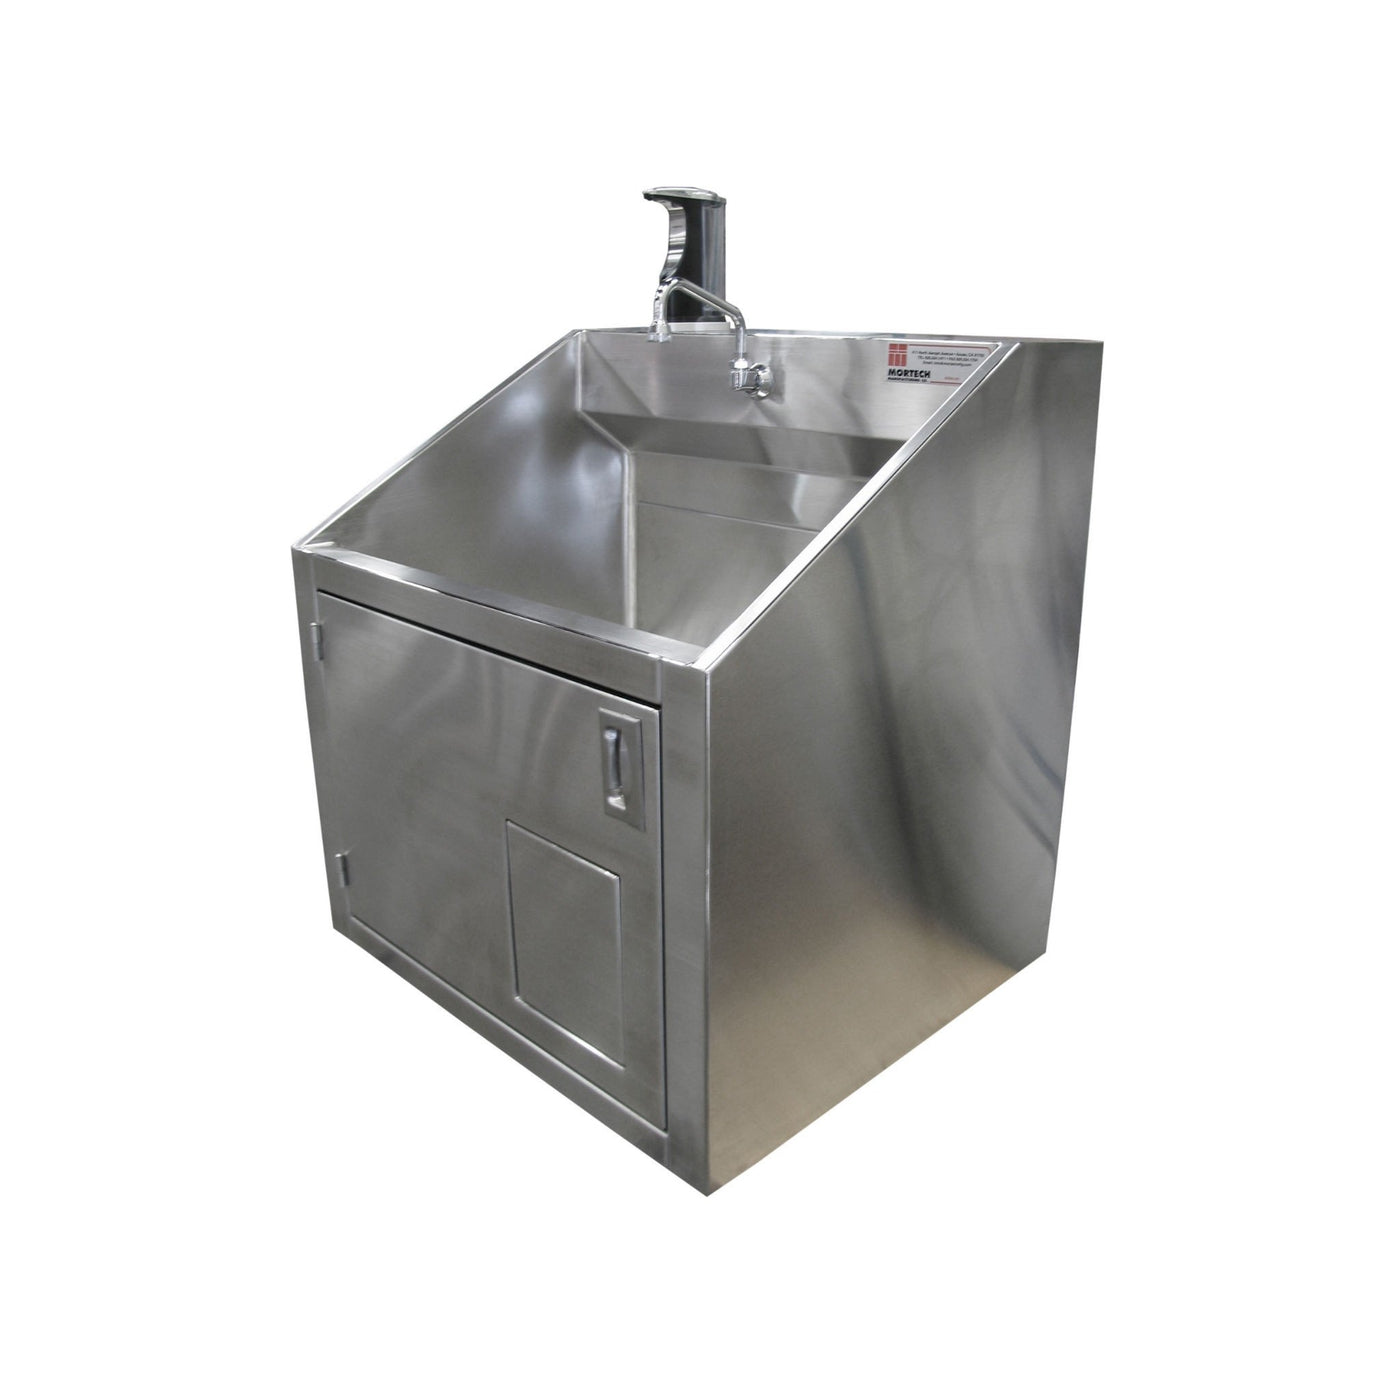 Single Scrub Station-Sink Station-Mortech Manufacturing Company Inc. Quality Stainless Steel Autopsy, Morgue, Funeral Home, Necropsy, Veterinary / Anatomy, Dissection Equipment and Accessories